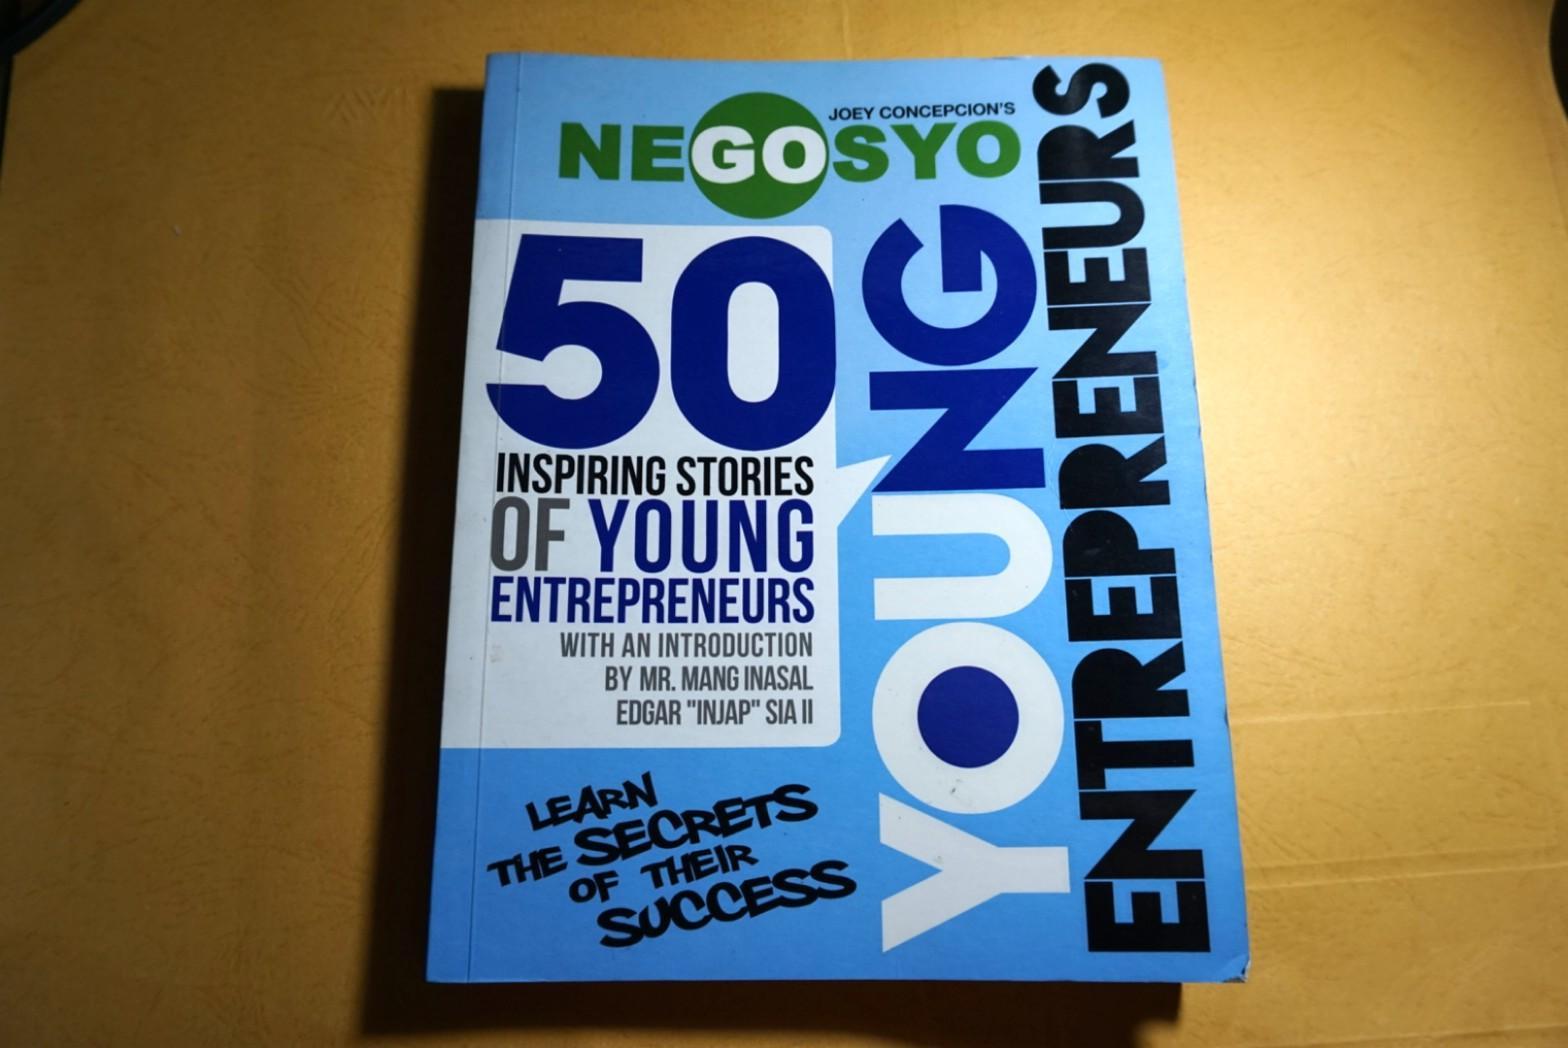 Negosyo: 50 Inspiring Stories of Young Enterpreneurs